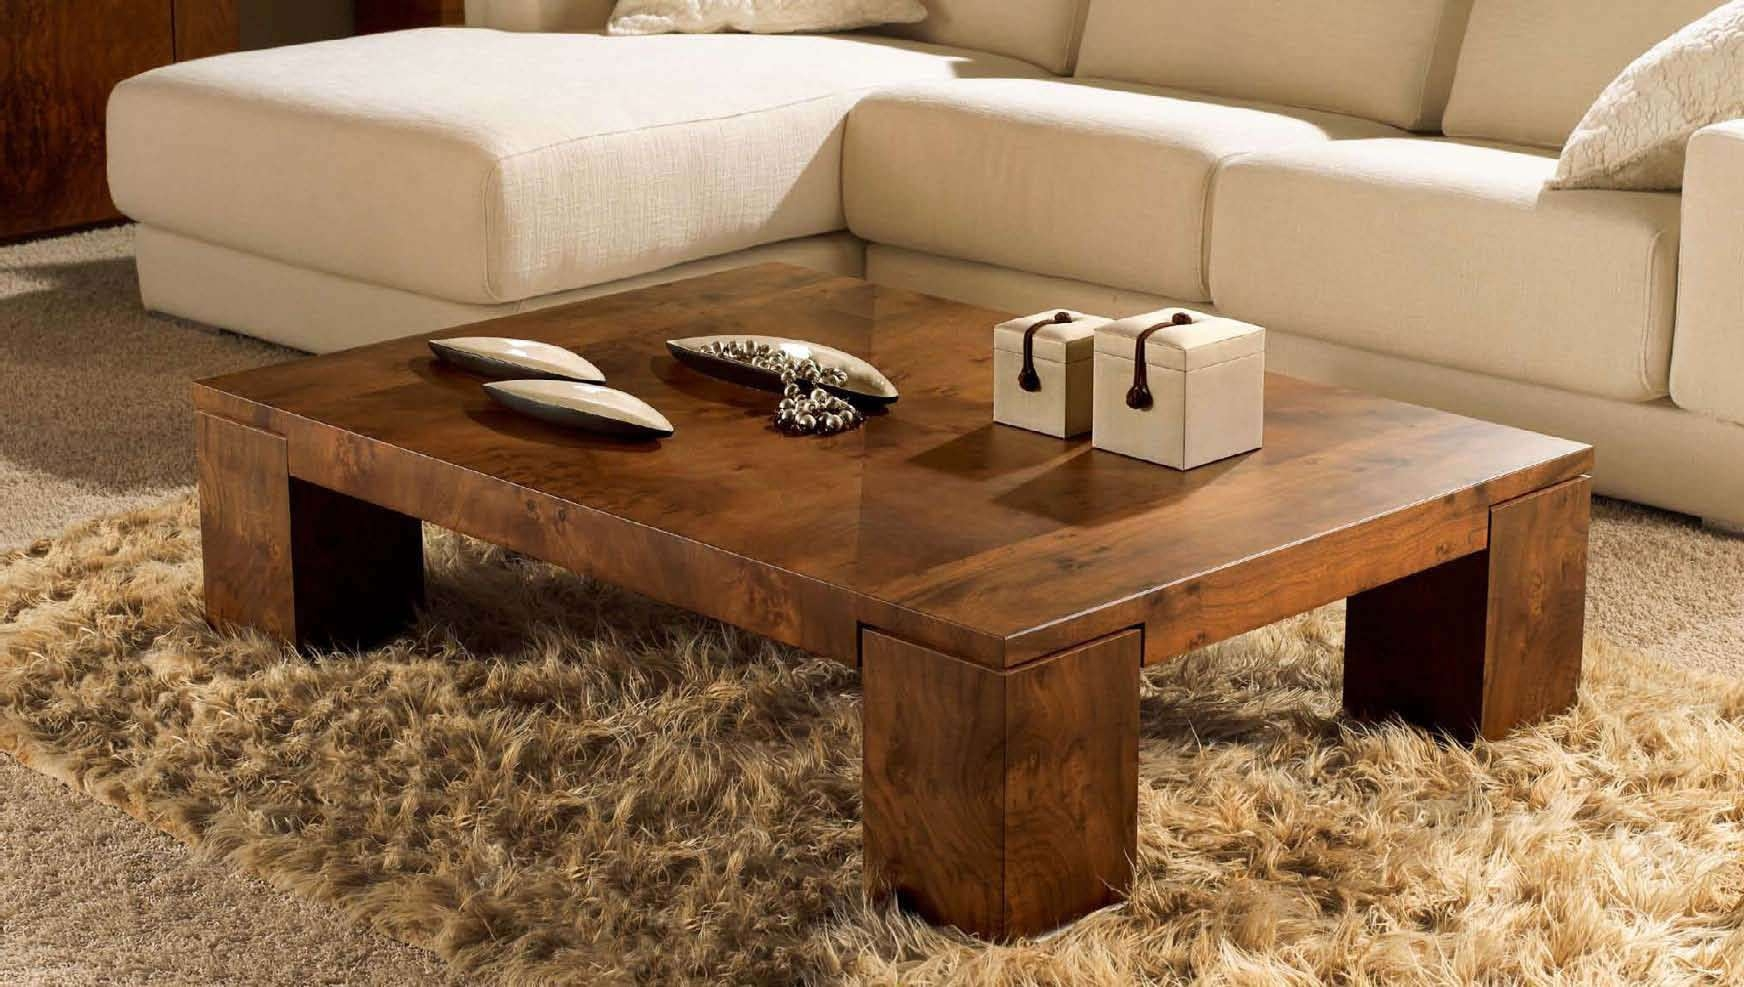 Easy Wooden Coffee Table Set For Small Home Decor Inspiration Intended For Newest Wooden Coffee Tables (View 19 of 20)